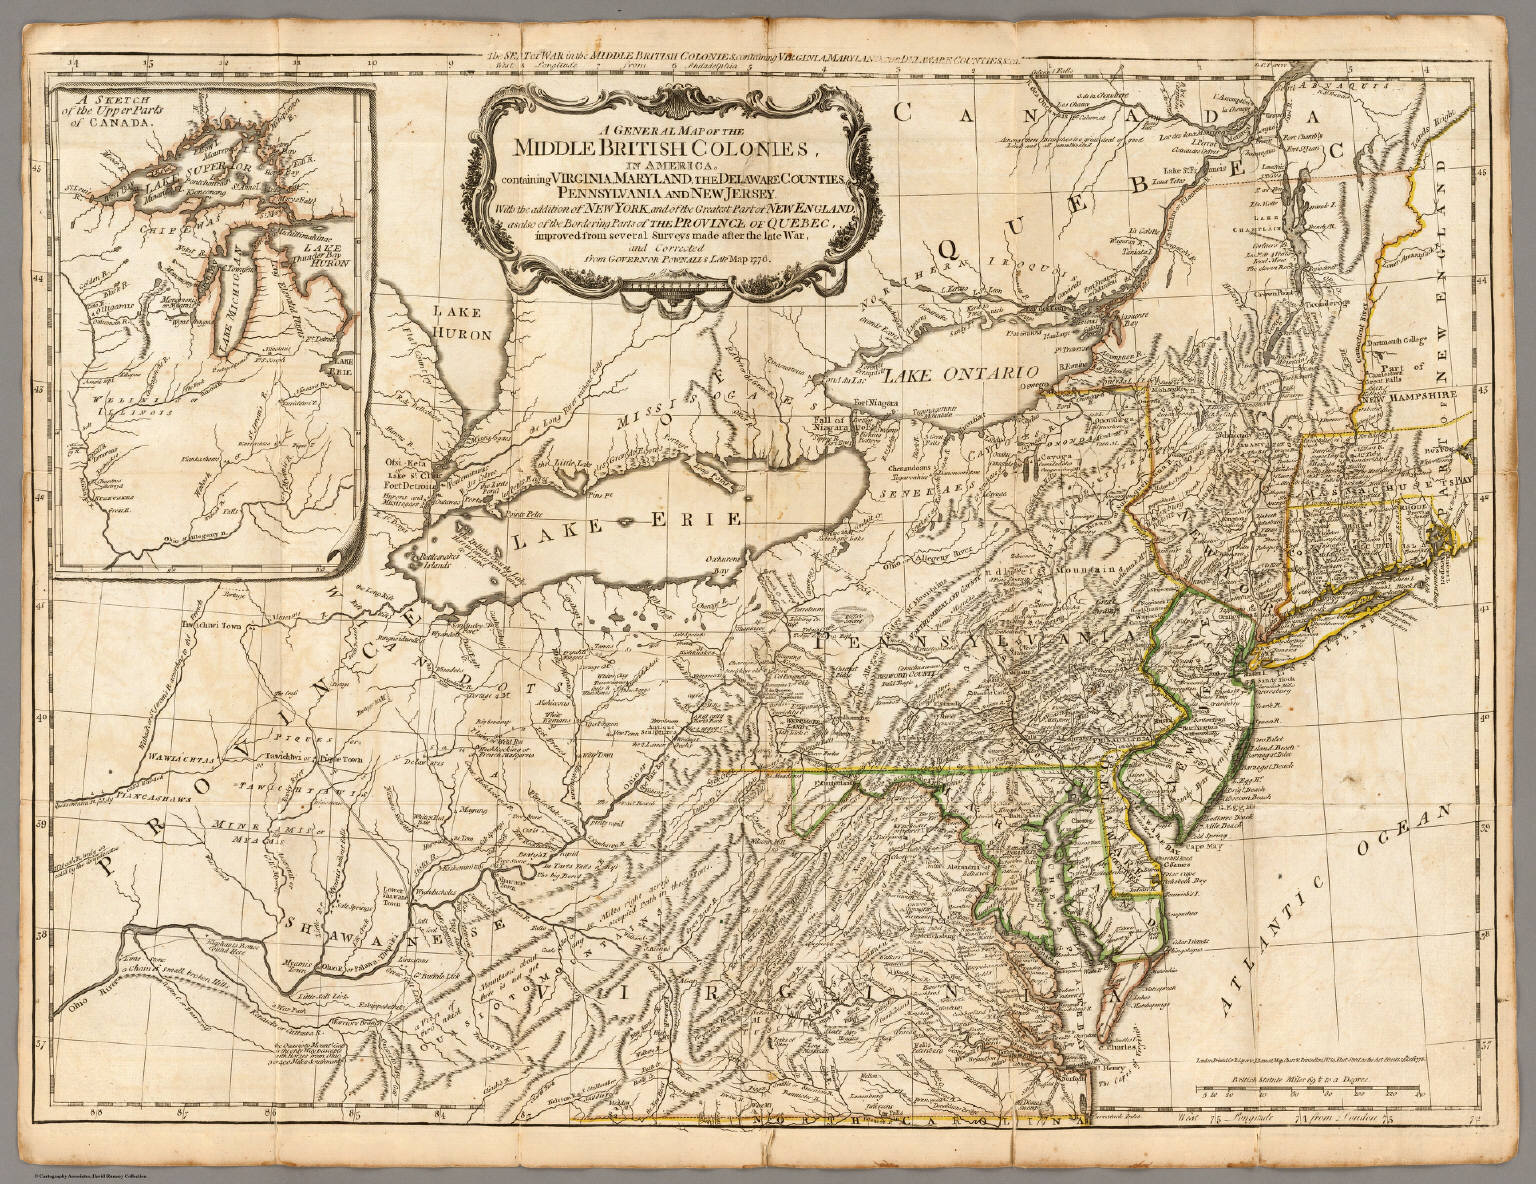 A General Map of the Middle British Colonies in America  David